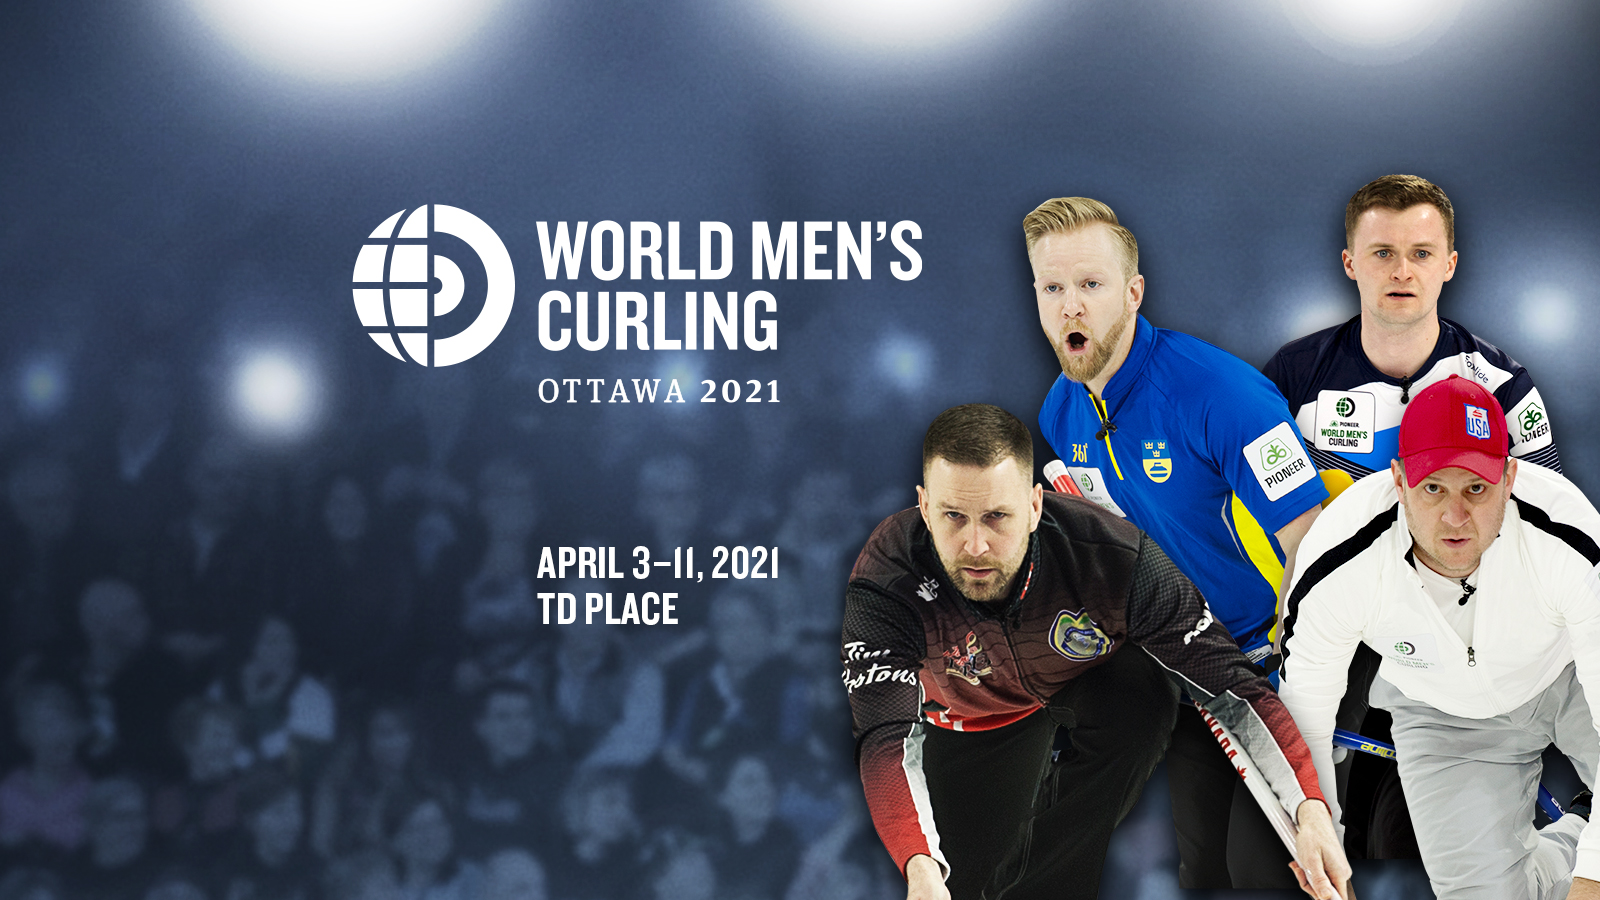 2021 WORLD MEN'S CURLING CHAMPIONSHIP – CANCELLED